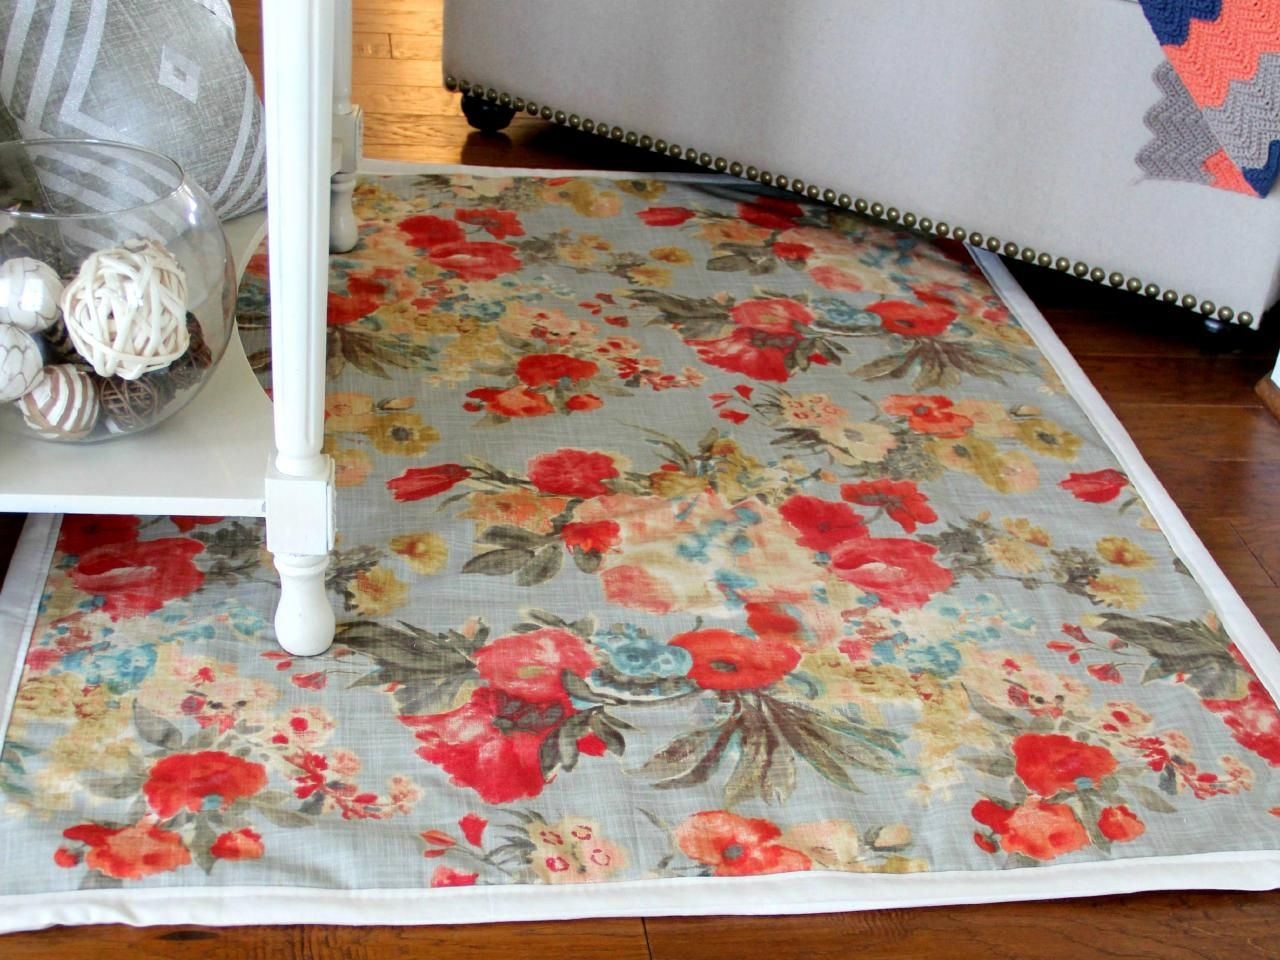 How To Make A Rug From Upholstery Fabric Fabric Decor Diy Rug Diy Rugs Fabric